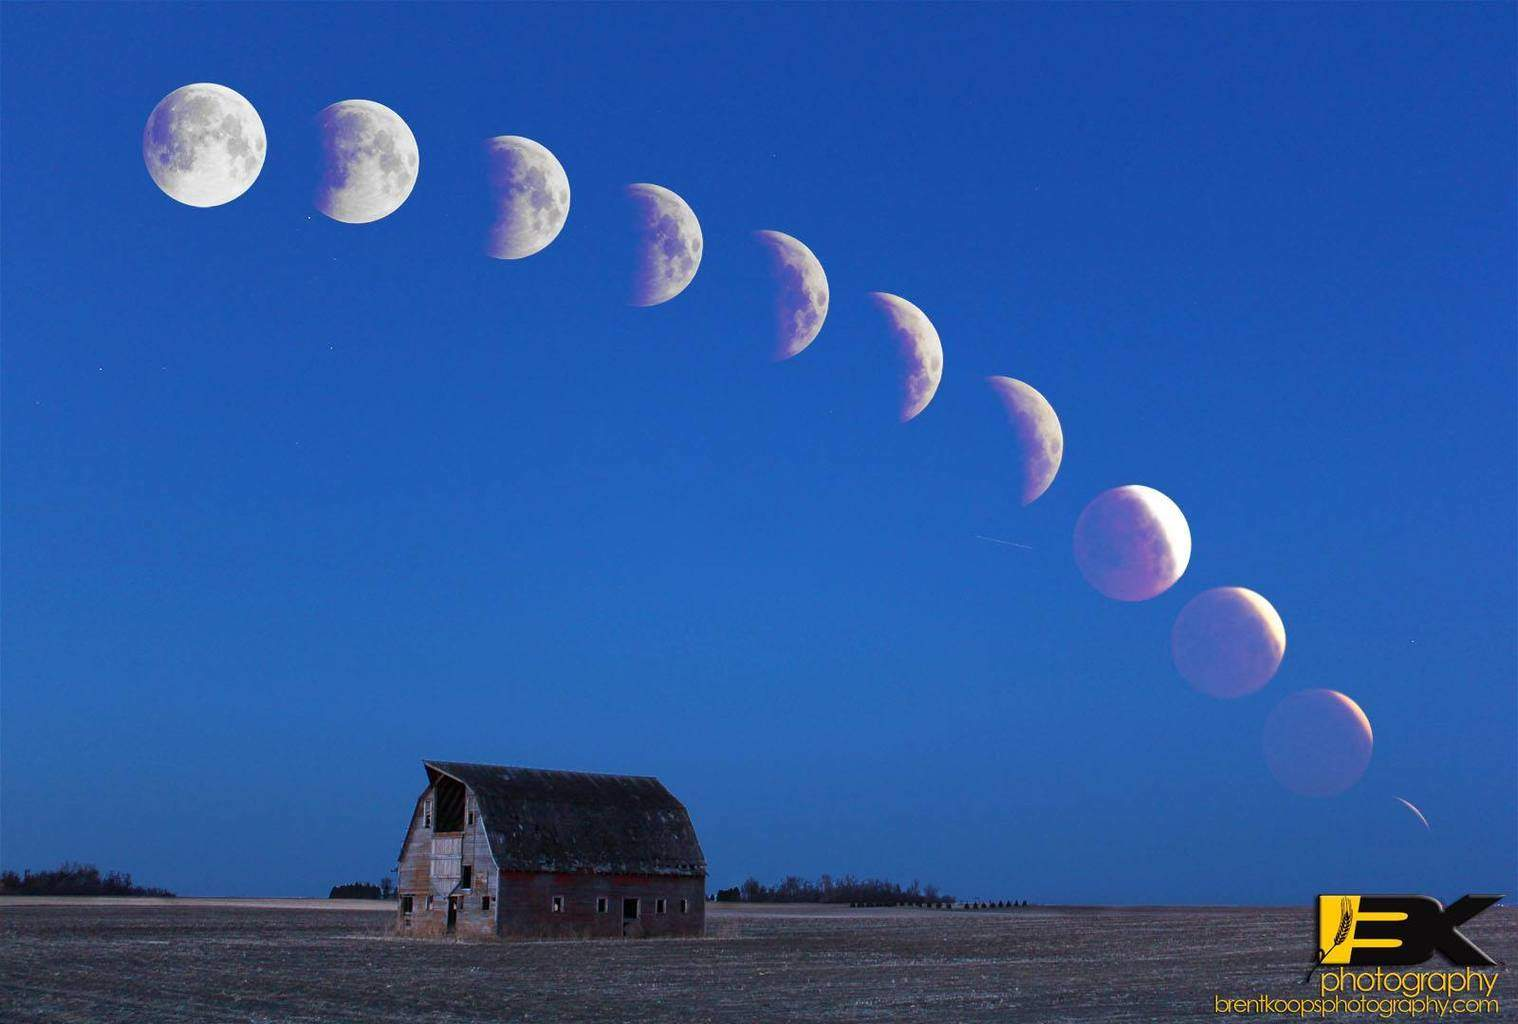 Composite image of this morning's lunar eclipse from Southern Minnesota.